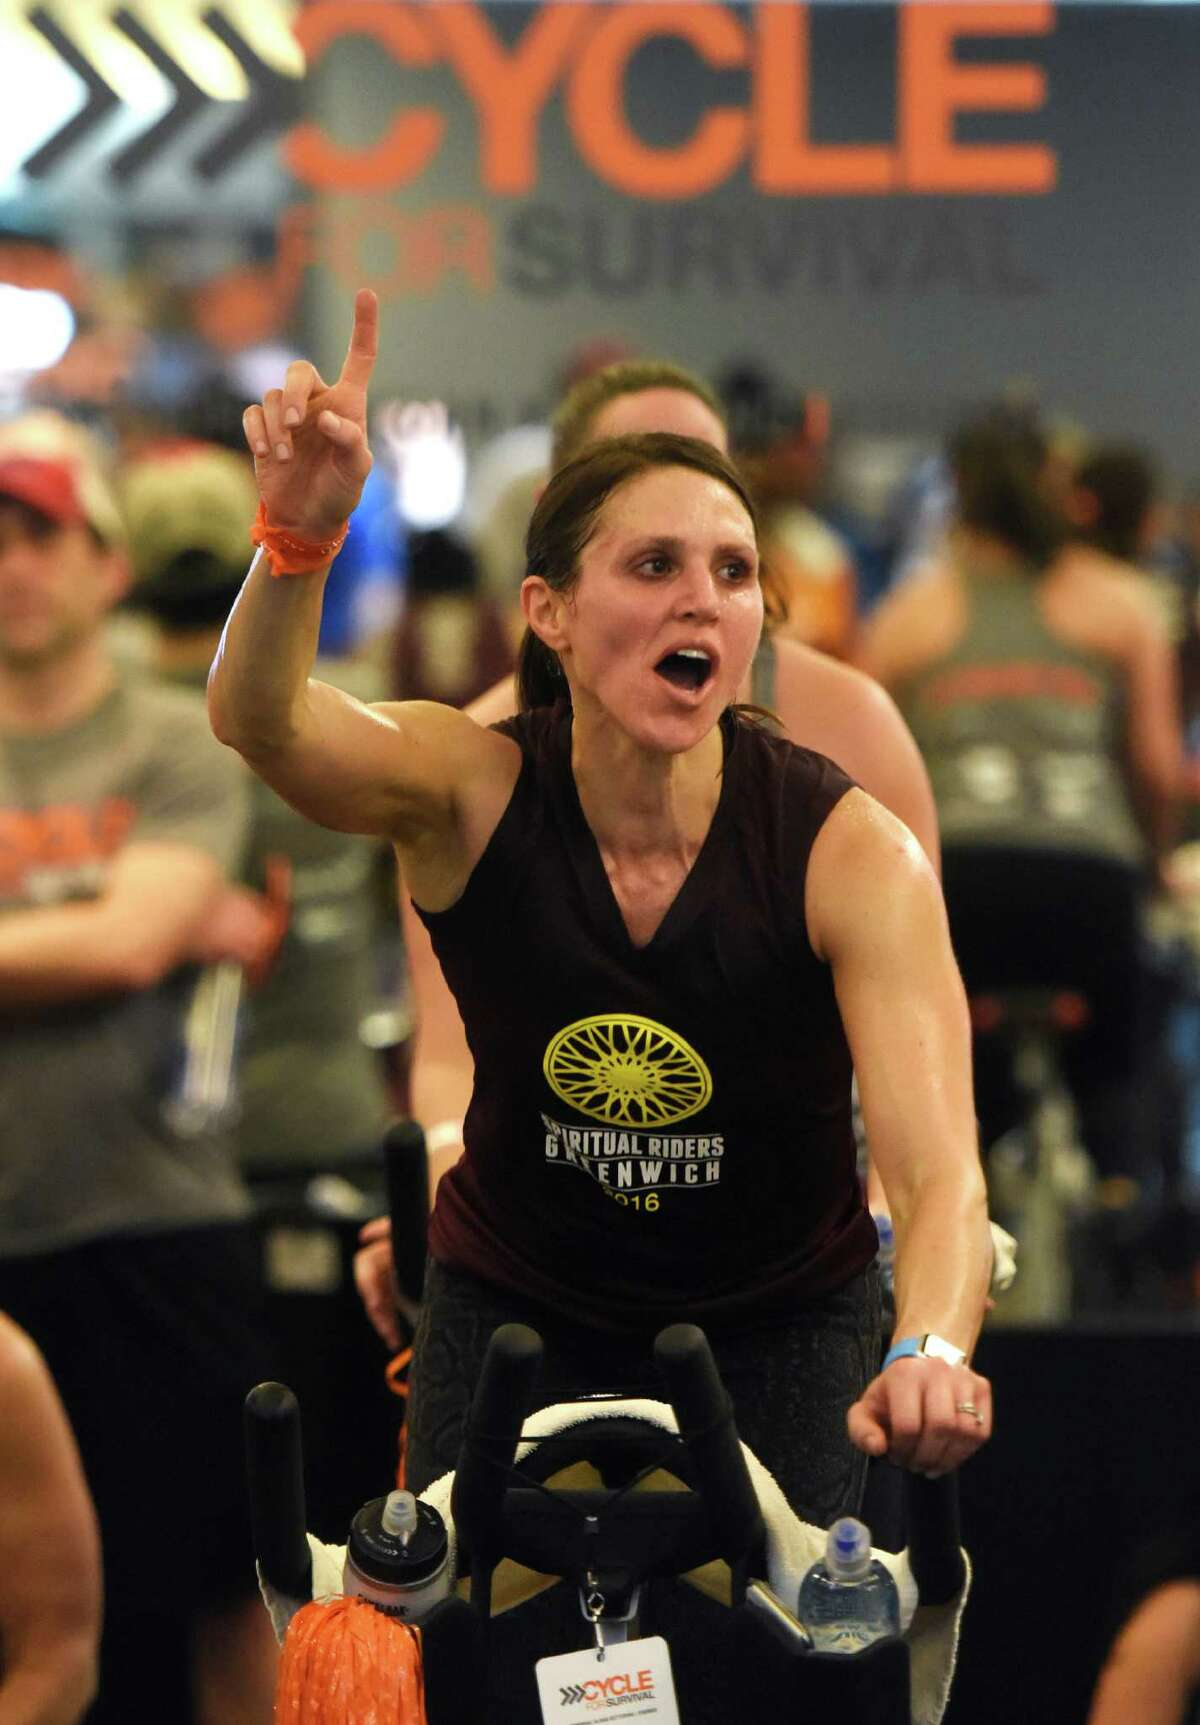 Lachmont, N.Y. resident Alexis Katz, of team Spiritual Riders, rides during the Cycle for Survival indoor cycling fundraiser at Equinox in Greenwich, Conn. Sunday, Feb. 21, 2016. Cycle for Survival, owned and operated by Memorial Sloan Kettering, is a fundraiser with the goal to beat rare cancers by raising money through a series of indoor cycling events across the country. 2016 marks the tenth year of rides and the event has raised over $90 million since 2007. More than 800 riders participated at the event in Greenwich Sunday and the Spiritual Riders team led the way raising more than $140,000 alone.